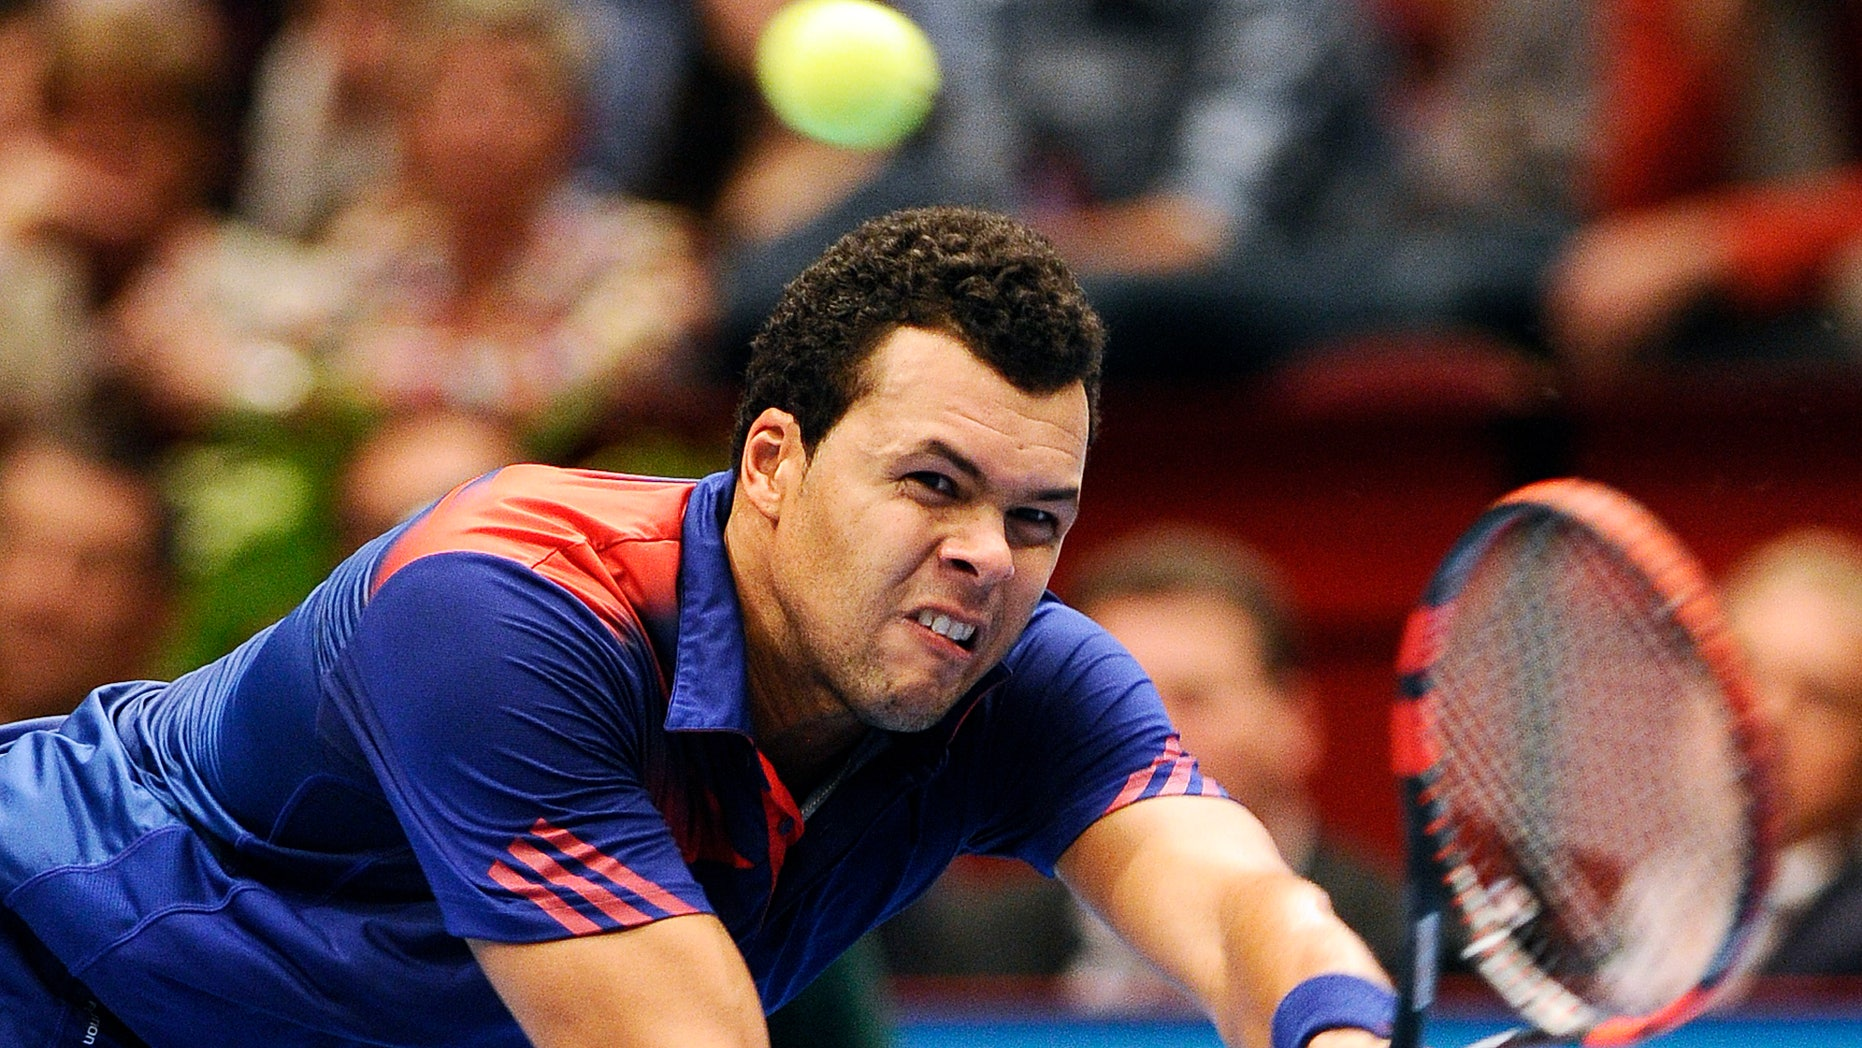 Jo-Wilfried Tsonga of France returns the ball to Robin Haase of the Netherlands during their semi final match at the Erste Bank Open tennis tournament in Vienna, Austria, Saturday, Oct. 19, 2013. (AP Photo/Hans Punz)